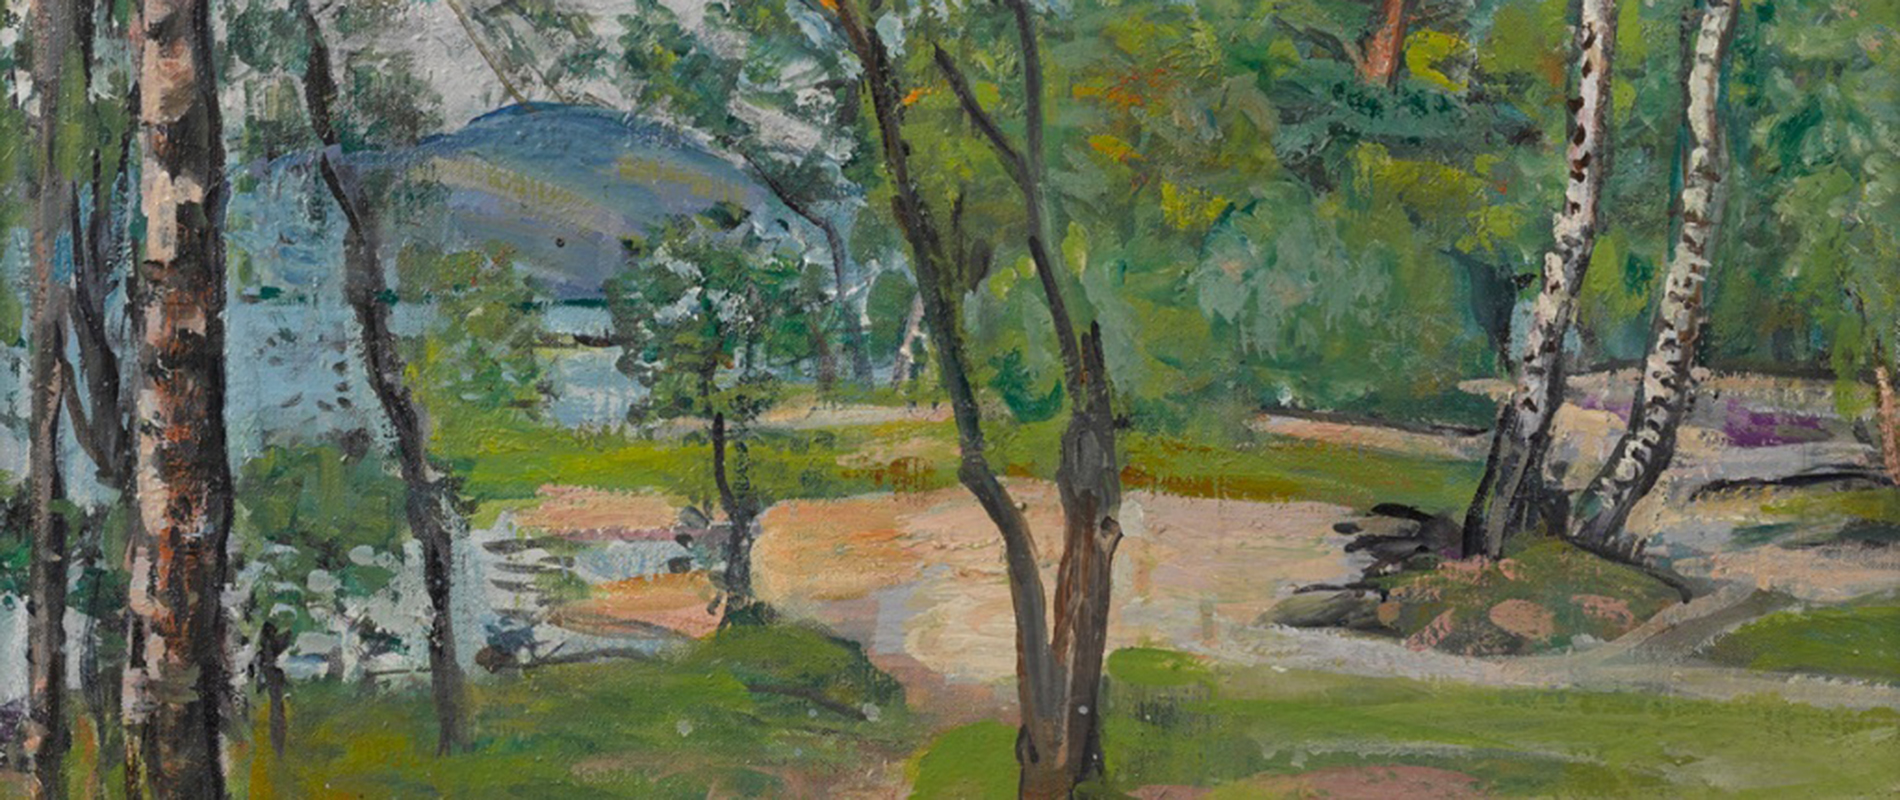 New exhibition showcasing the work of the Scottish colourists set to open at the University of Hull